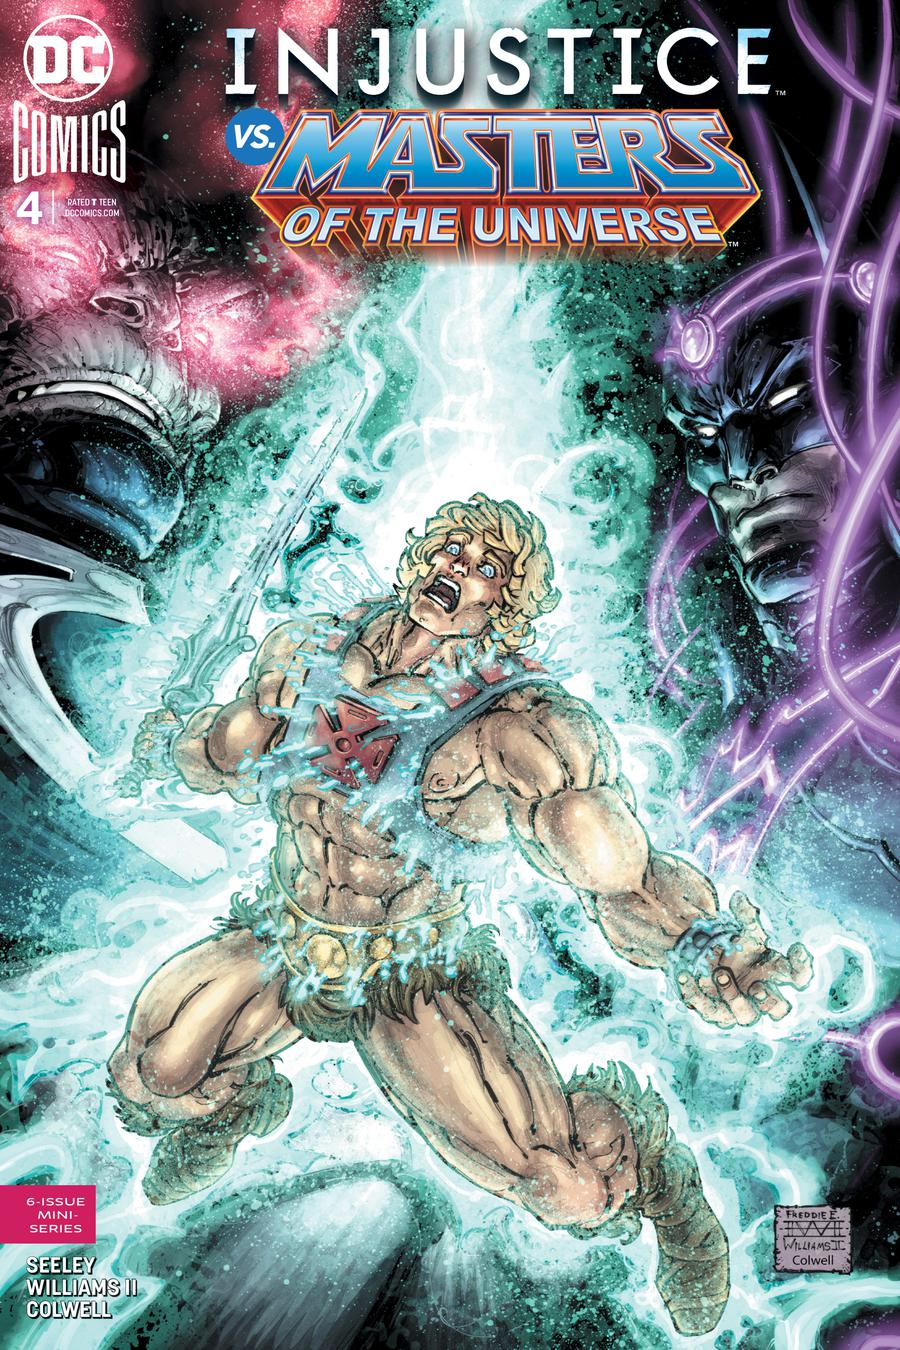 Injustice vs The Masters Of The Universe #4